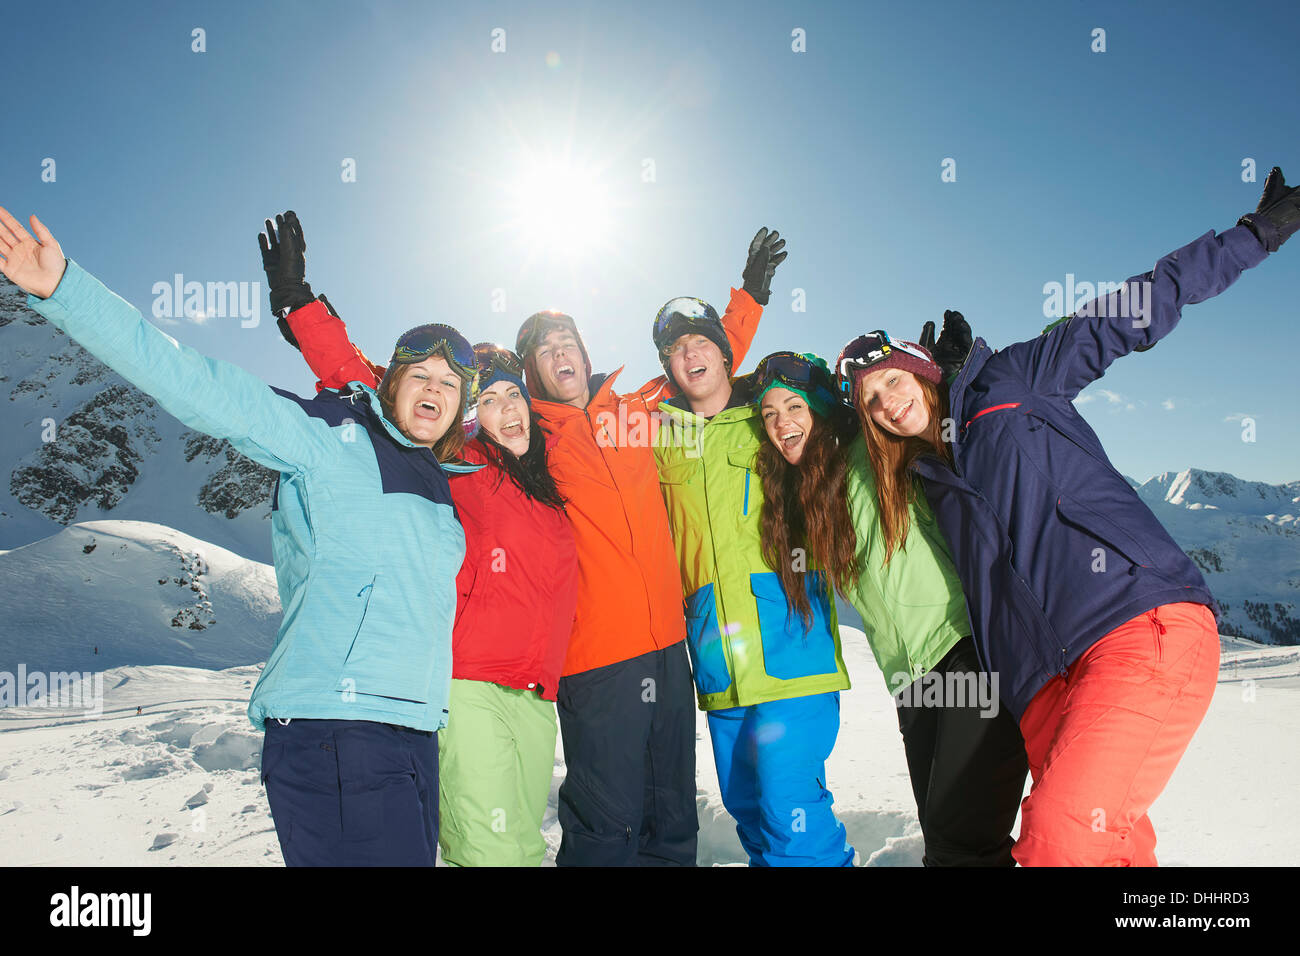 Friends smiling with arms raised, Kuhtai, Austria - Stock Image